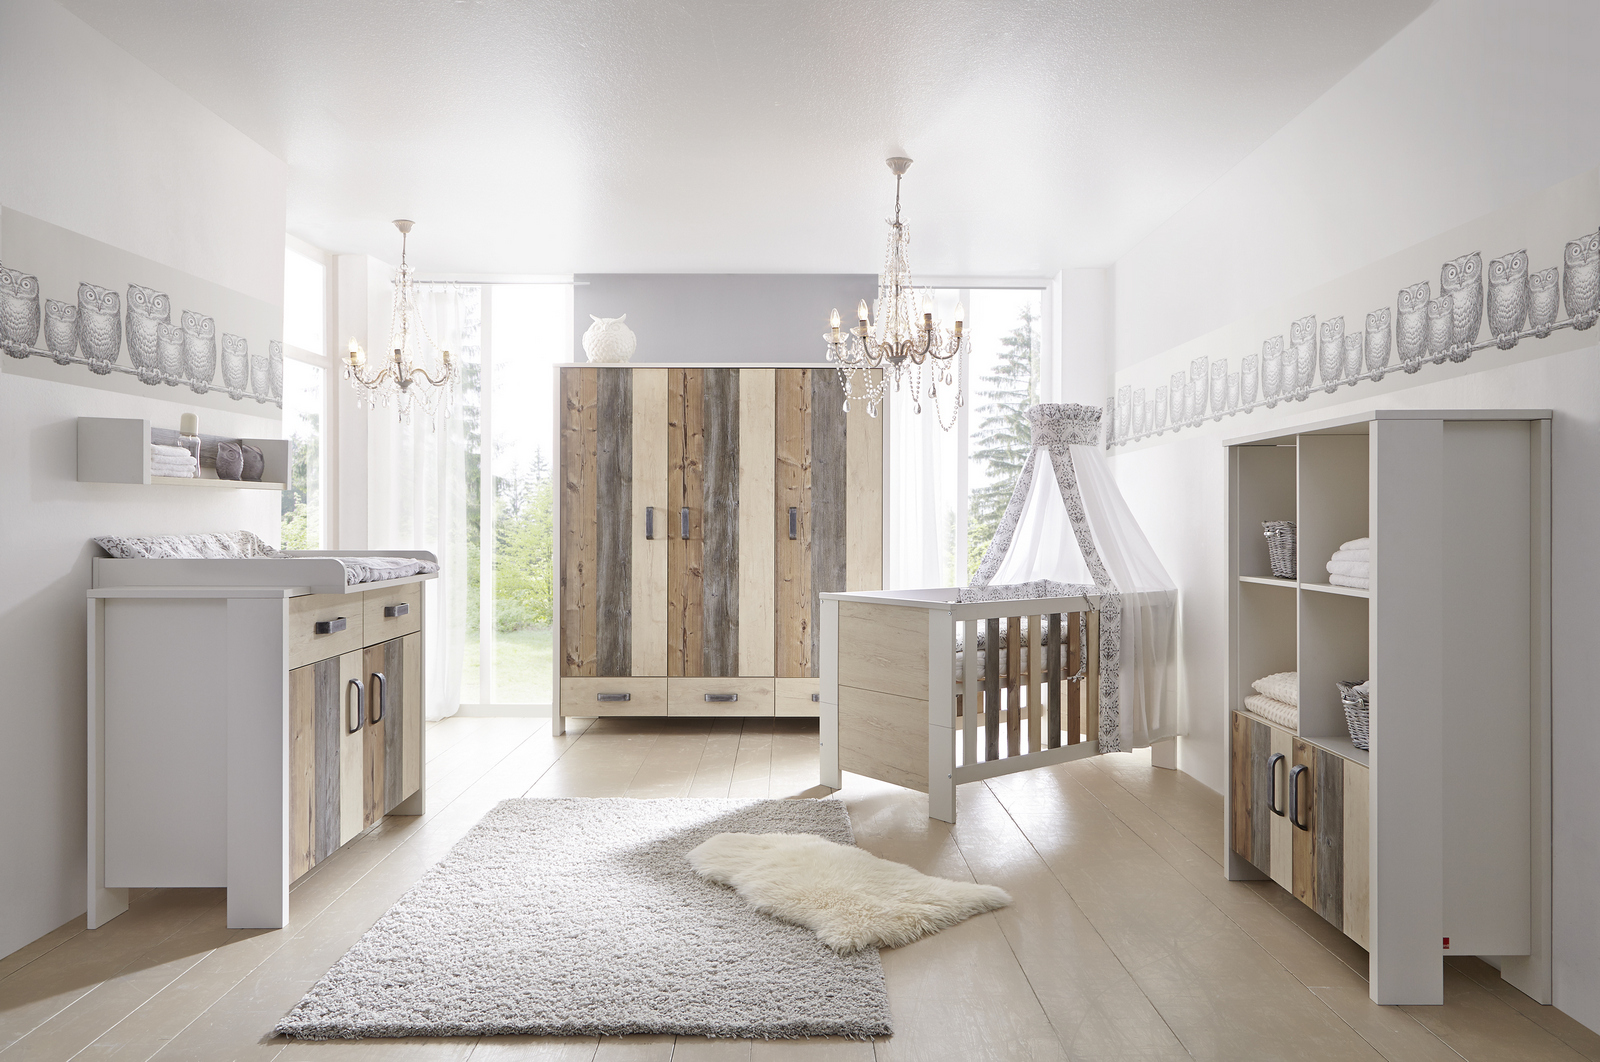 schardt gmbh co kg kinderzimmer woody. Black Bedroom Furniture Sets. Home Design Ideas